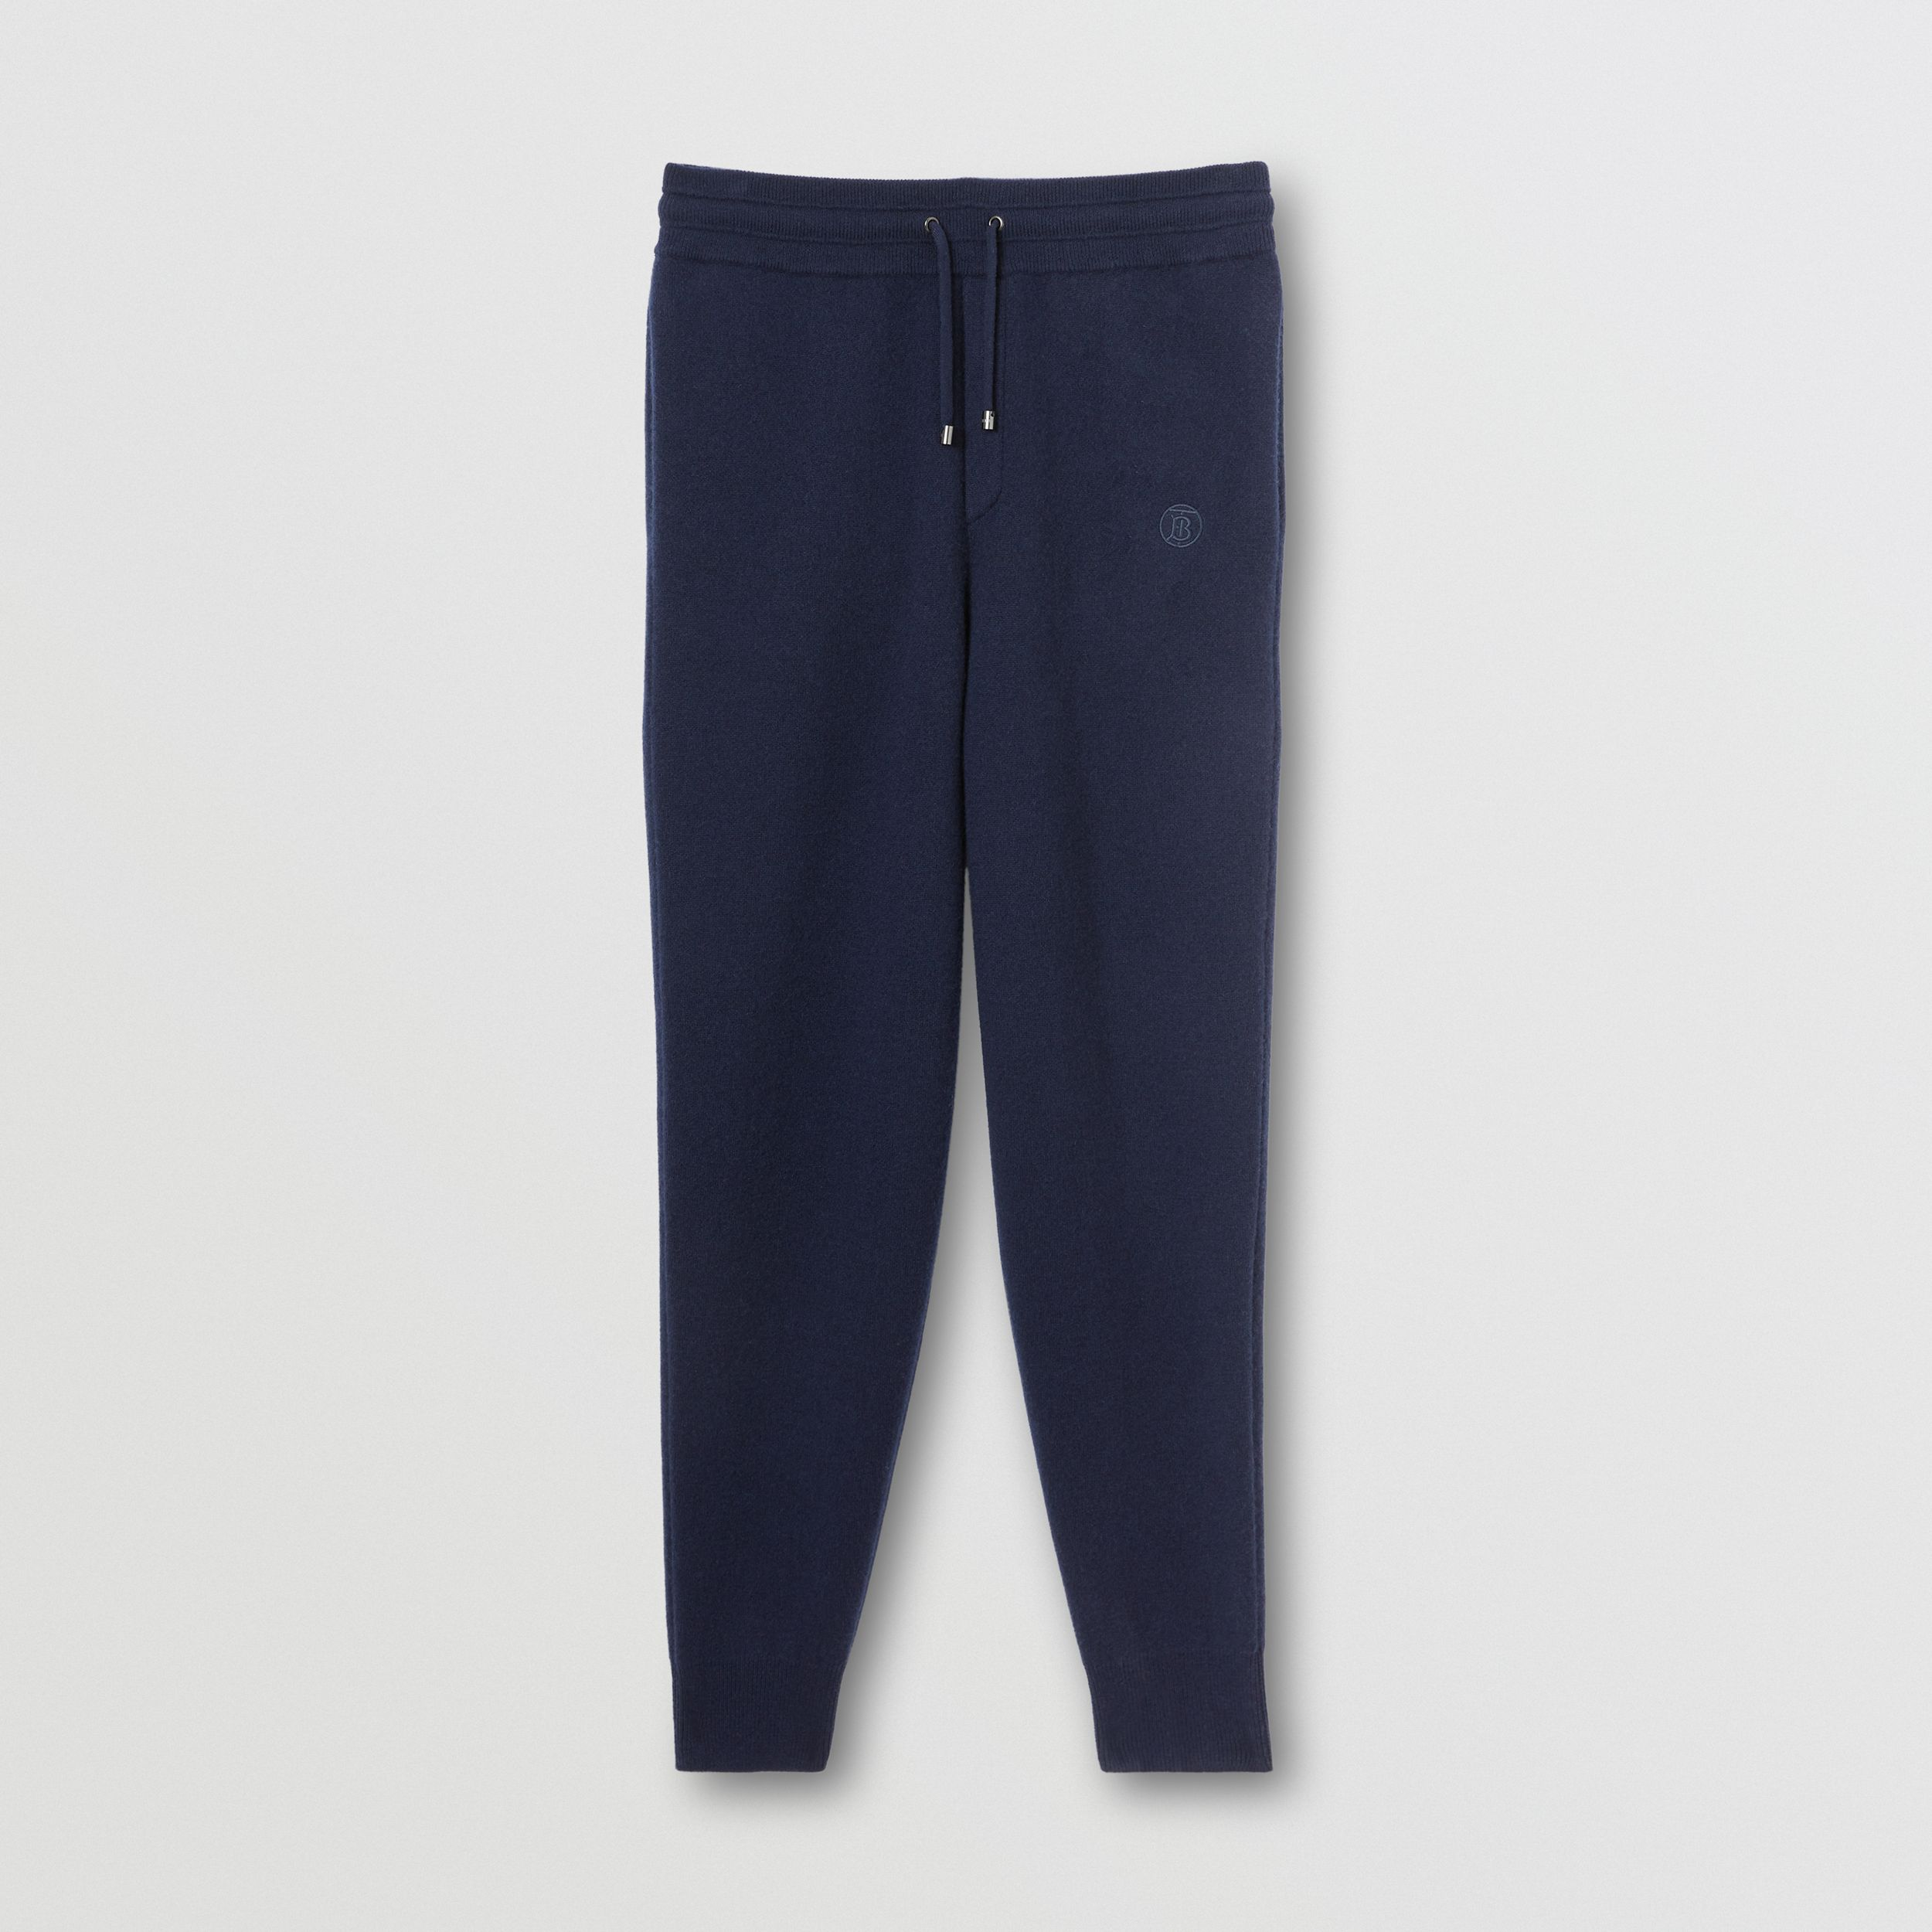 Monogram Motif Cashmere Blend Jogging Pants in Navy - Men | Burberry - 4